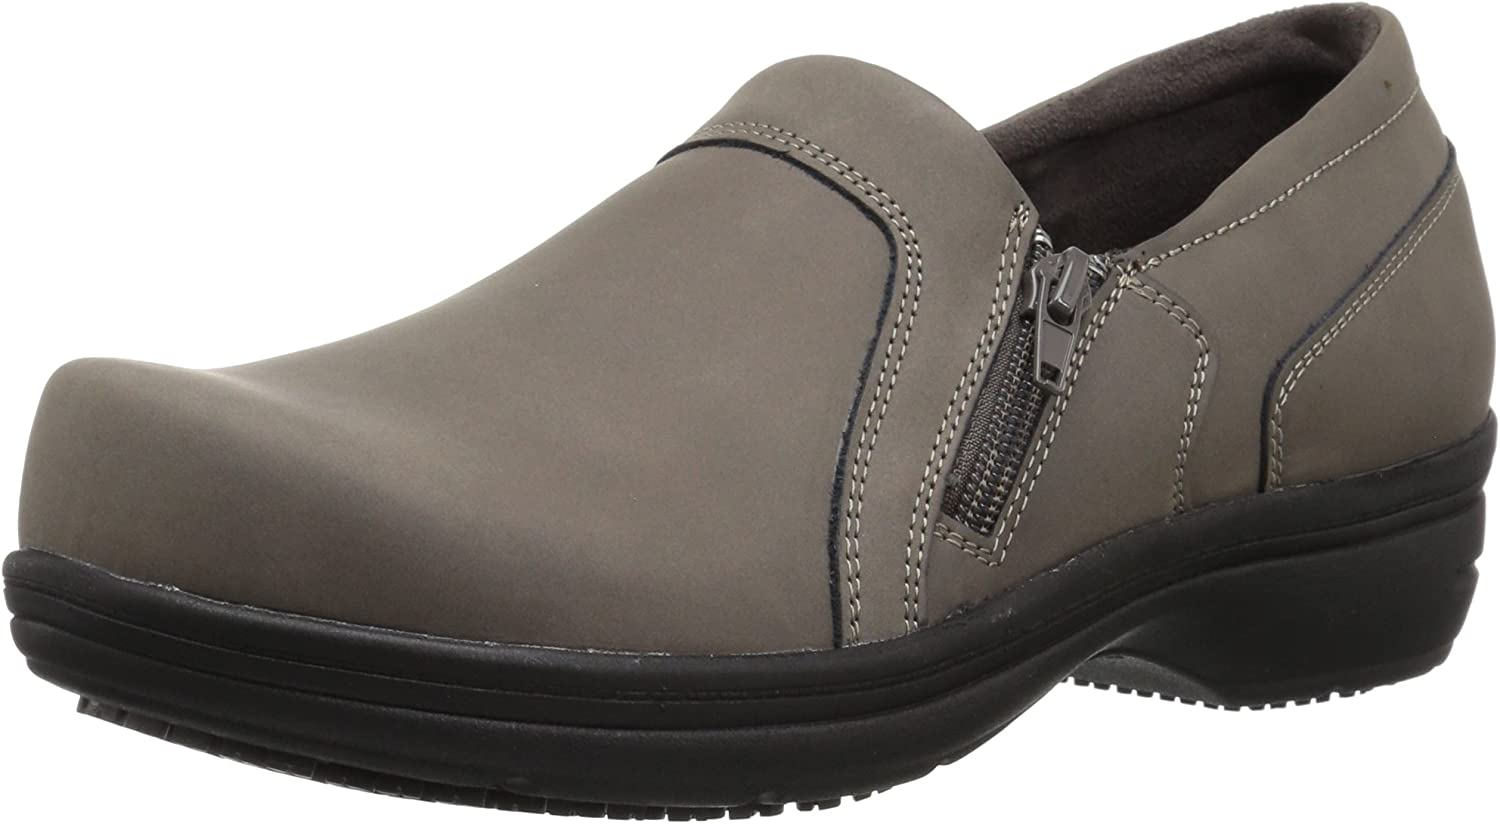 Cash special price Easy Works Women's Bentley Colorado Springs Mall Health Grey Shoe N Care Professional